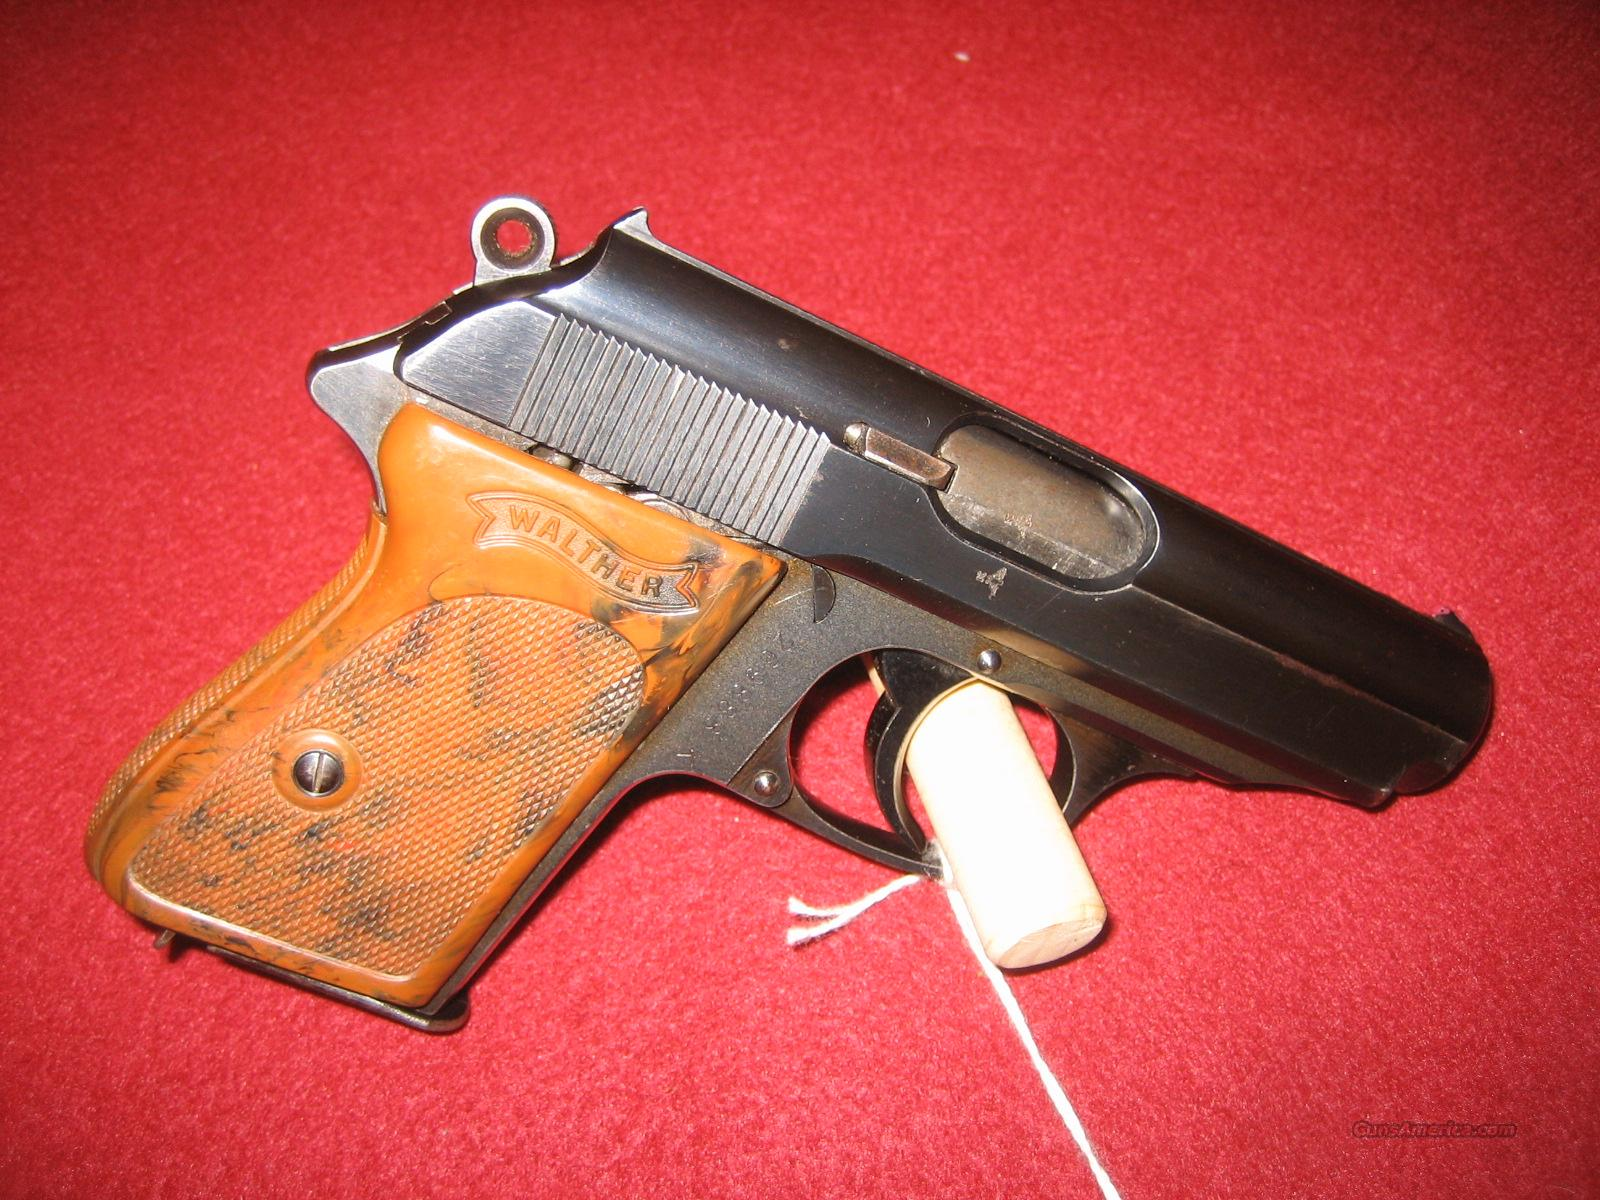 WALTHER PPK 32  Guns > Pistols > Walther Pistols > Pre-1945 > PPK